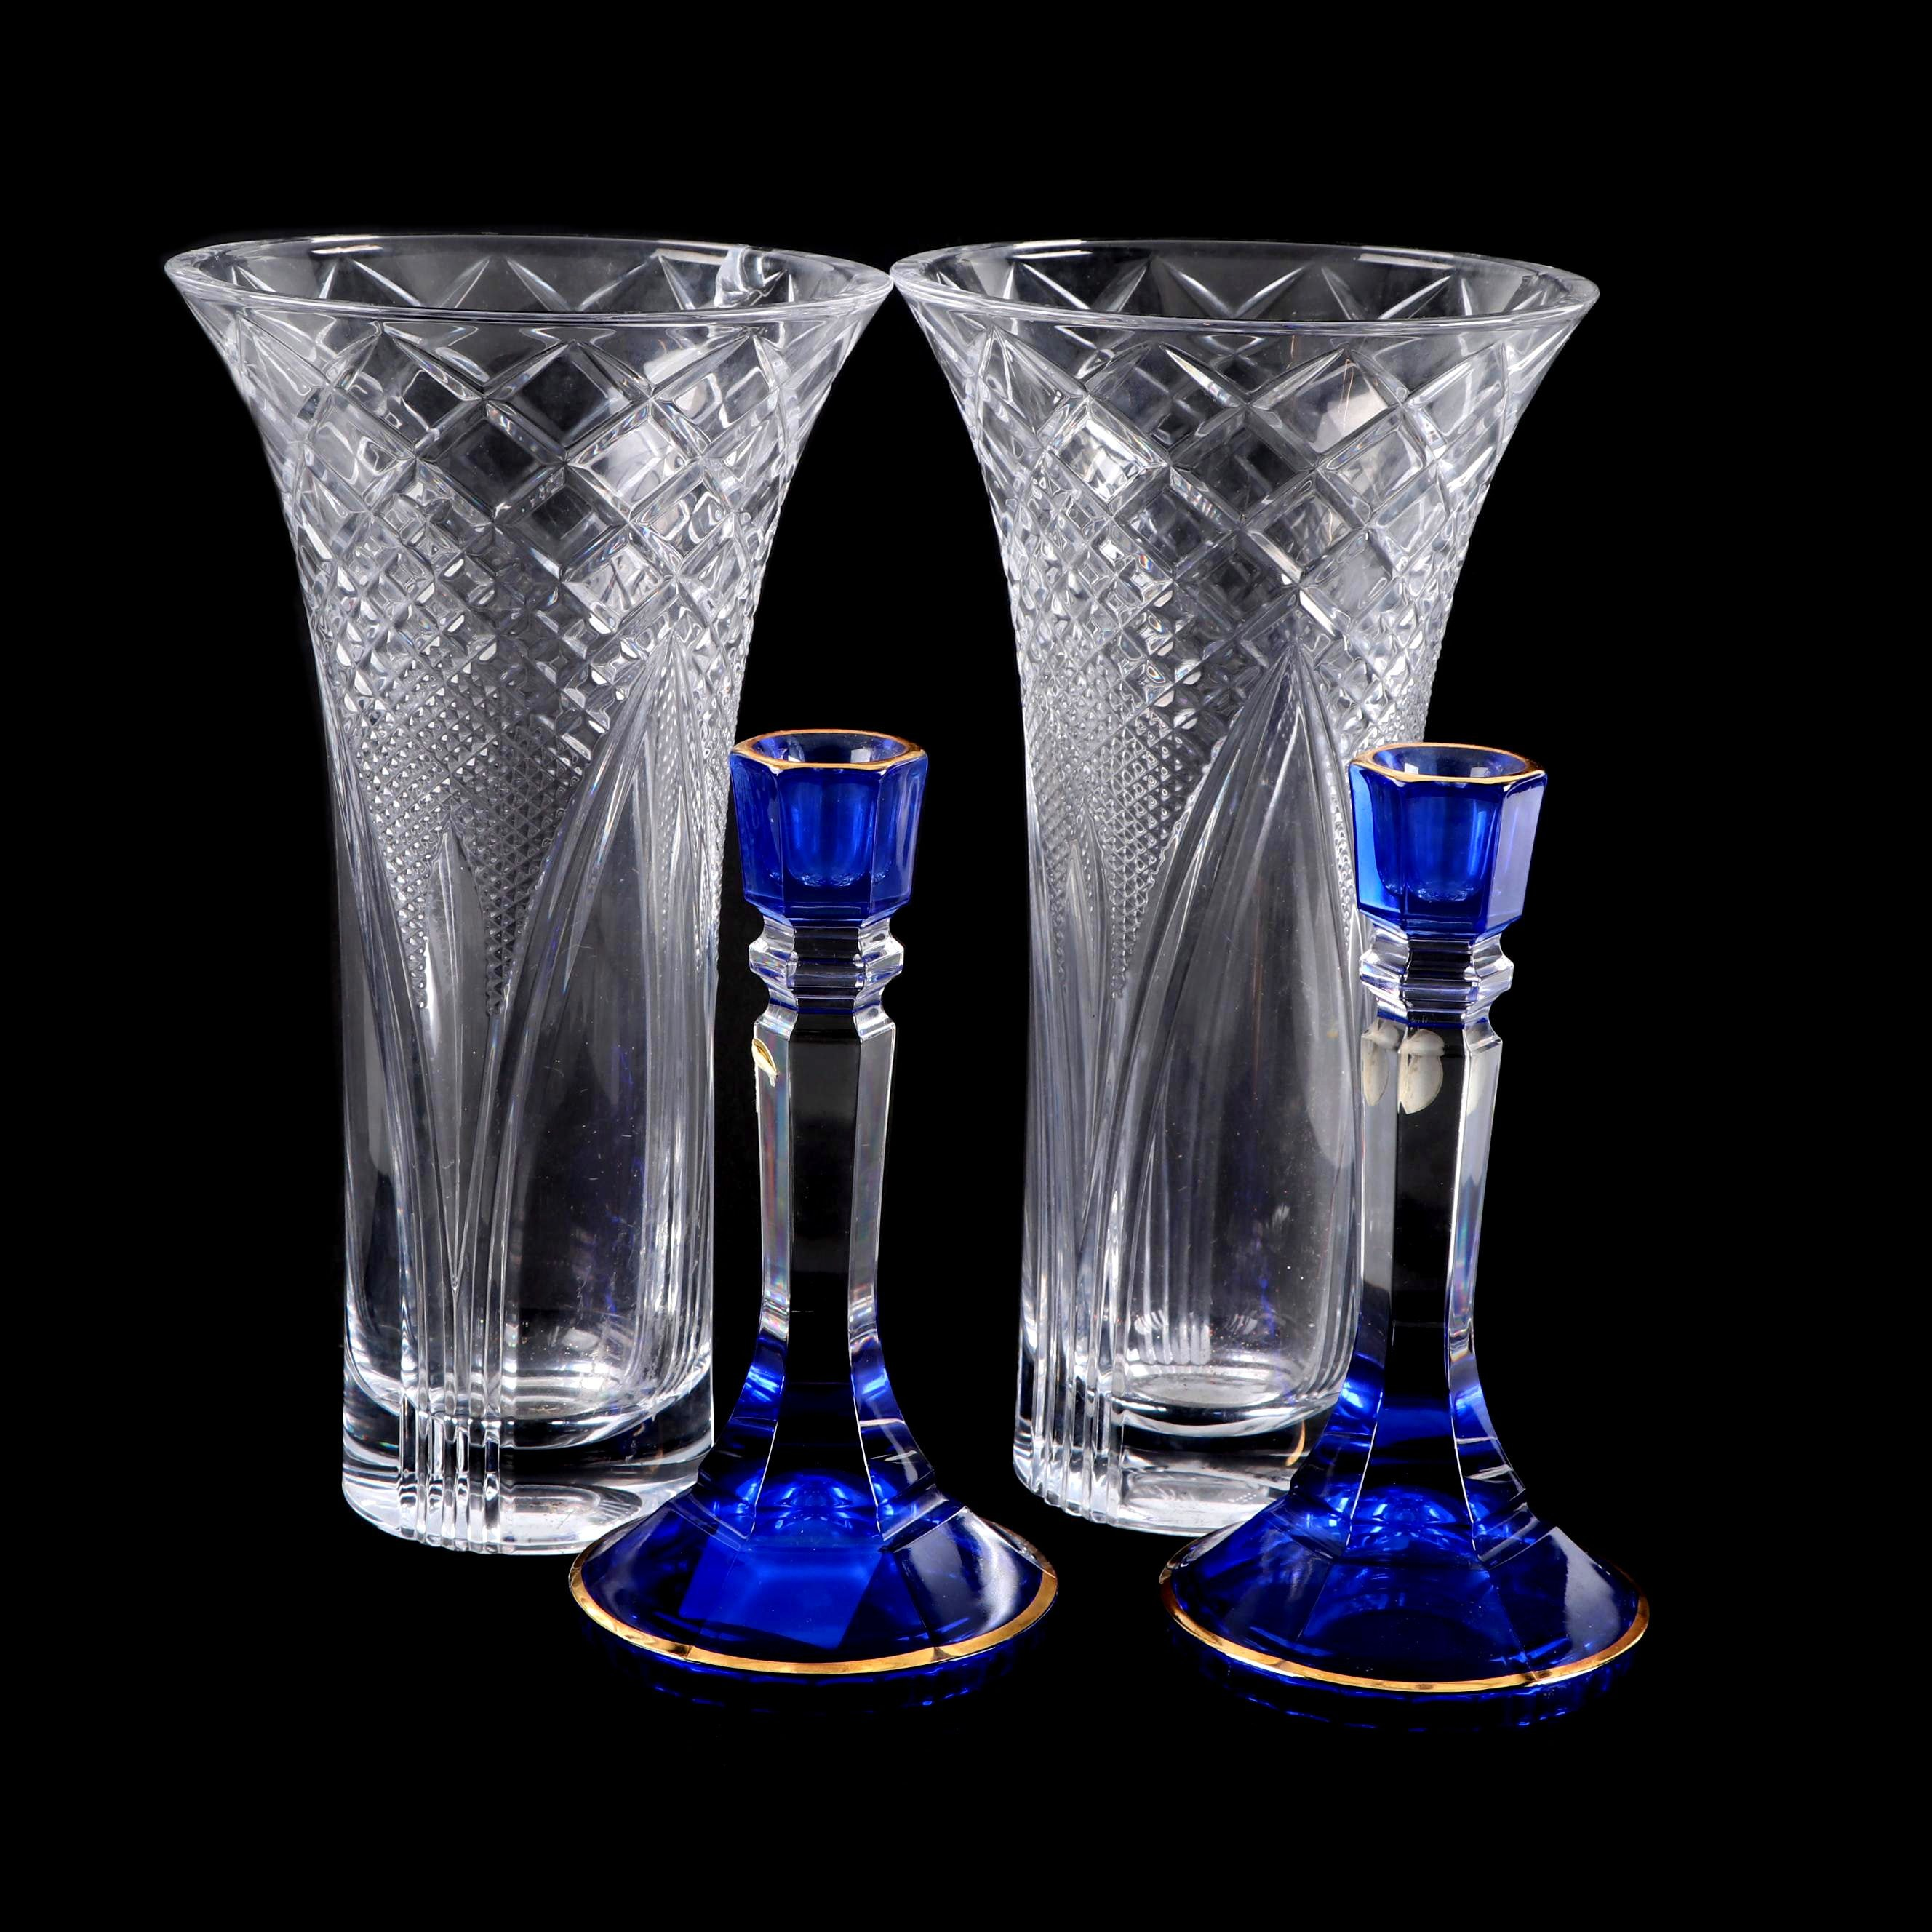 Cobalt Lead Crystal Candlesticks and Cut Glass Vases